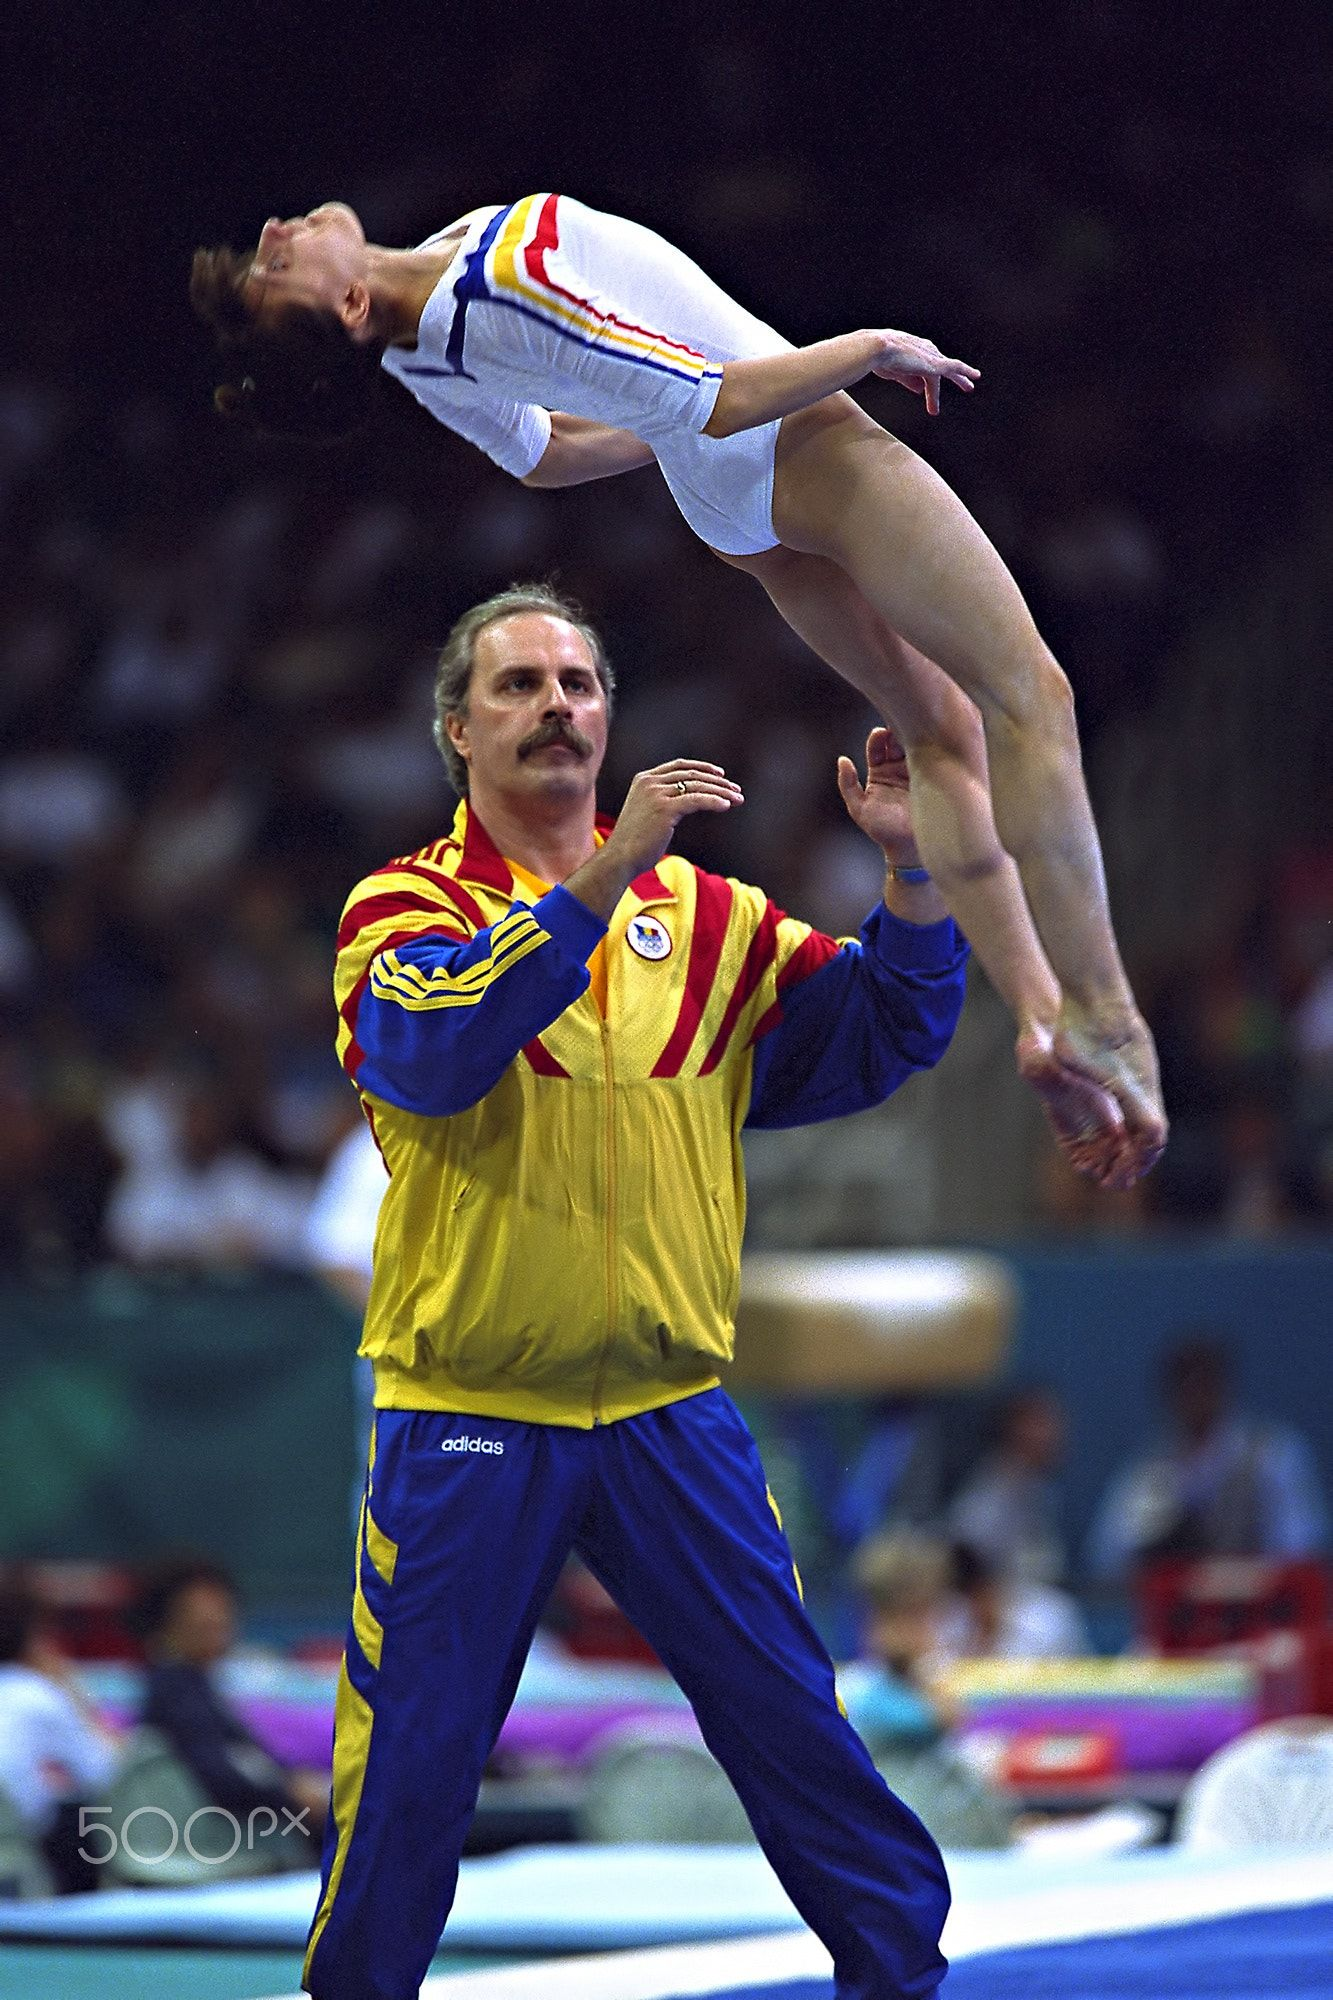 1996 Olympics Coach Octavian Belu Romania During Warm Ups For The Floor Exercise At The 1996 Olympics Romanian Olympics 2000 Olympics Russian Gymnastics